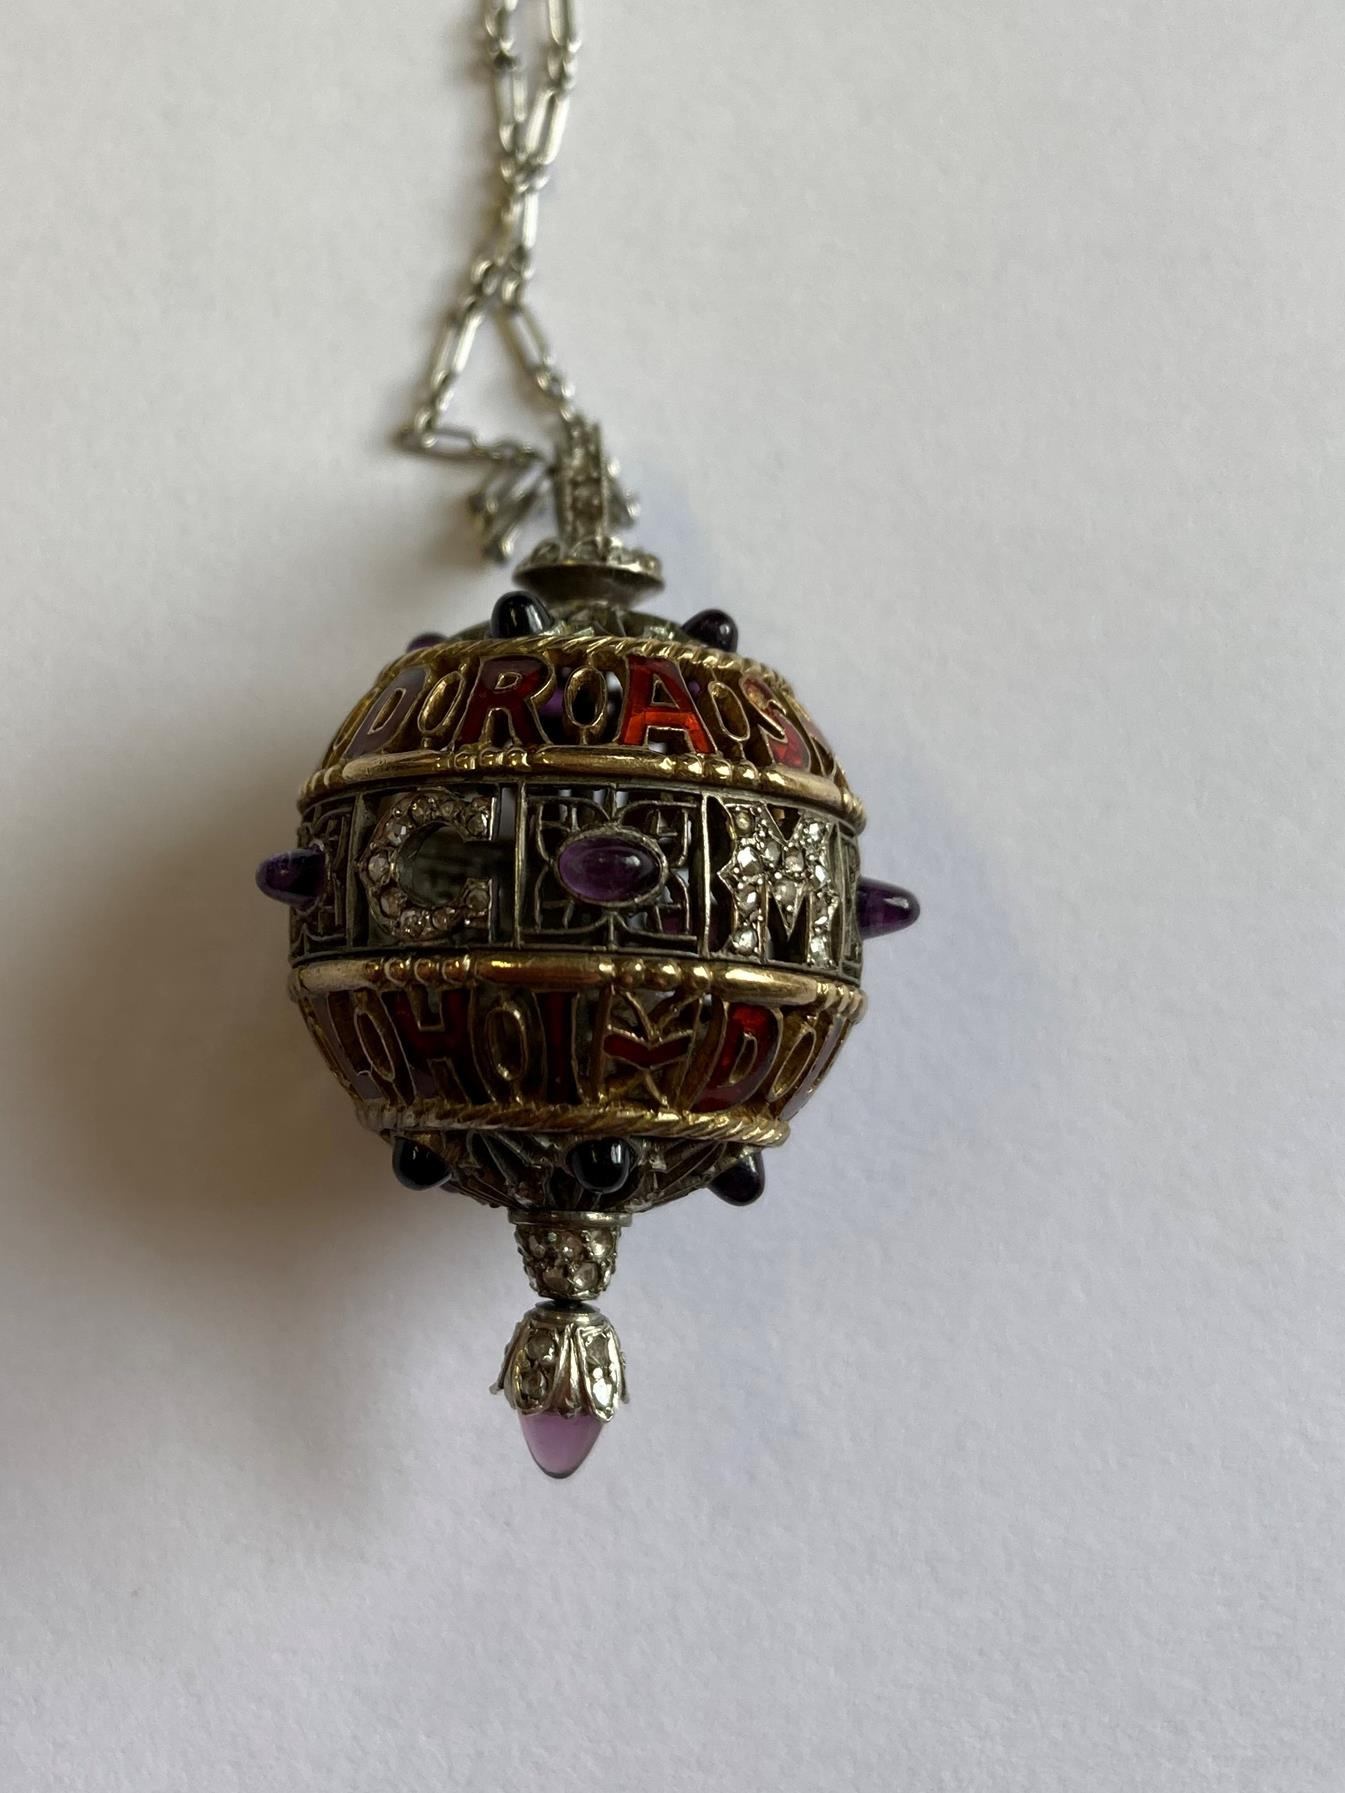 An Amethyst, Diamond and Enamel Pendant on Chain, 1911, the openwork ball with red enamel - Image 3 of 8